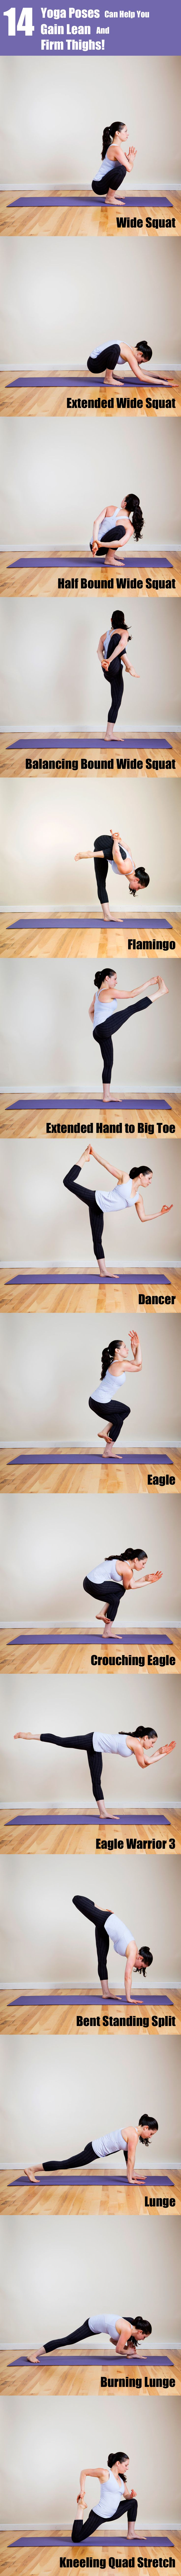 it's amazing how these yoga poses have shaped my thighs perfectly!